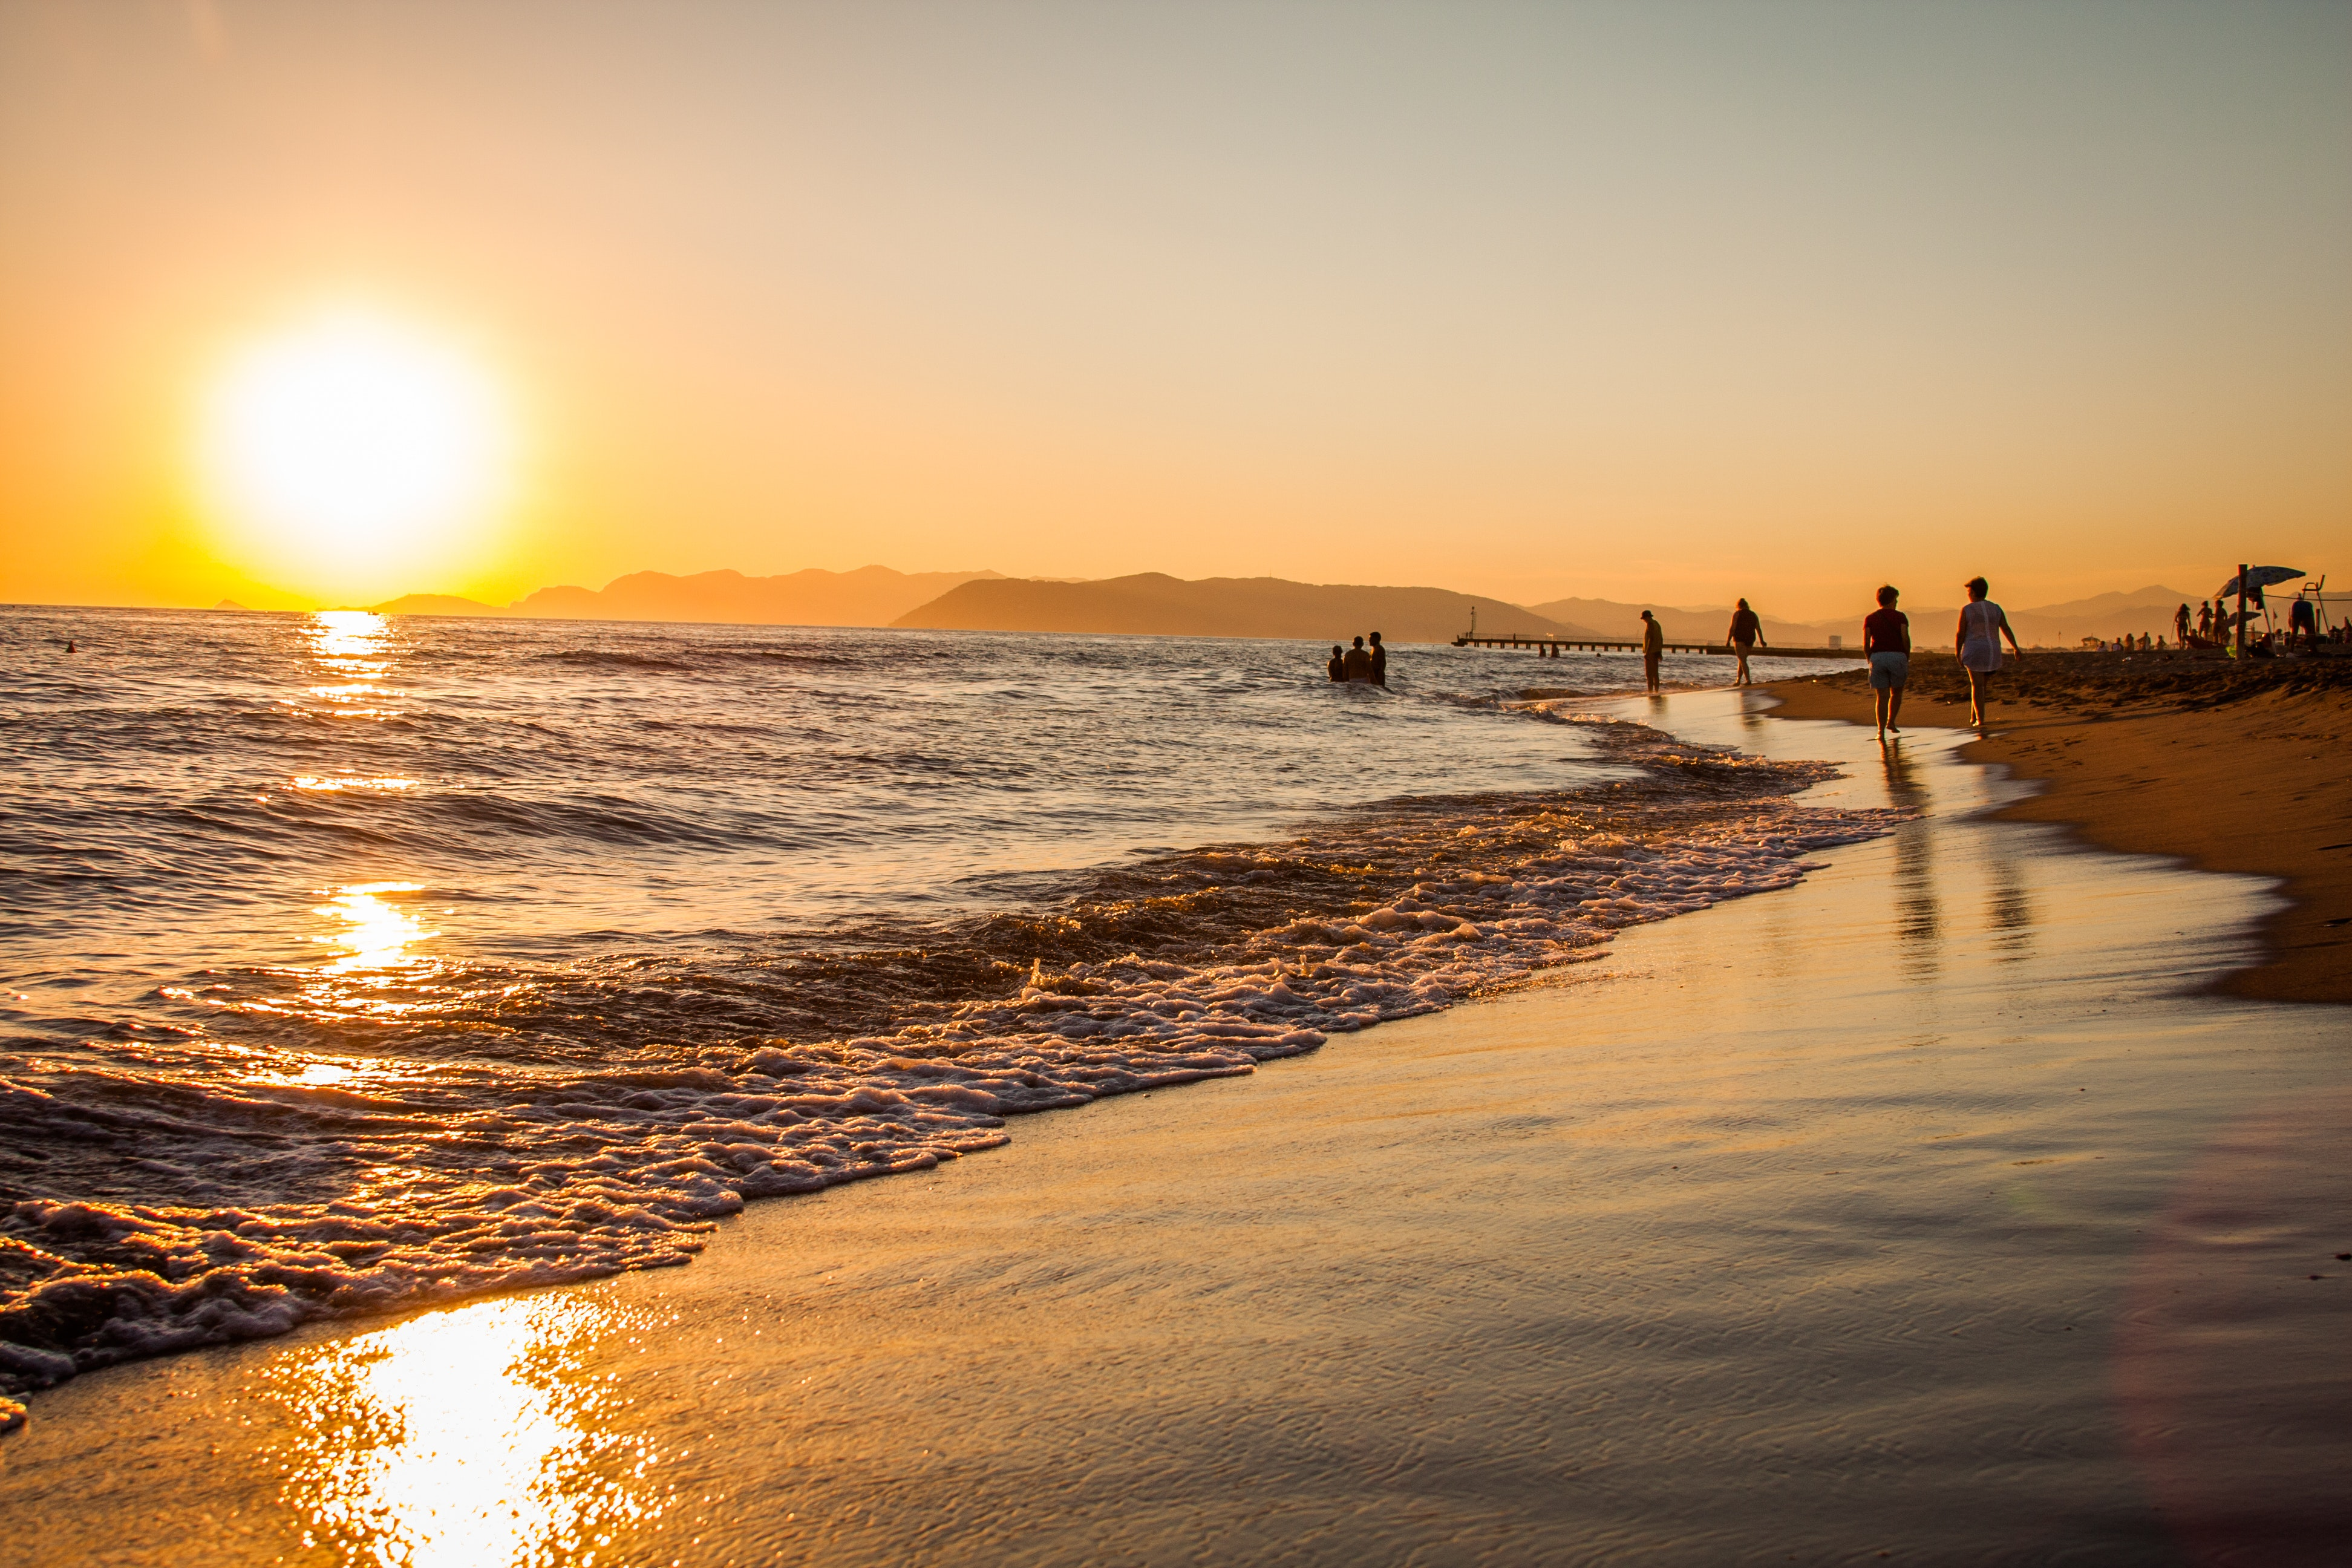 Group of people walking at the shoreline during golden hour photo